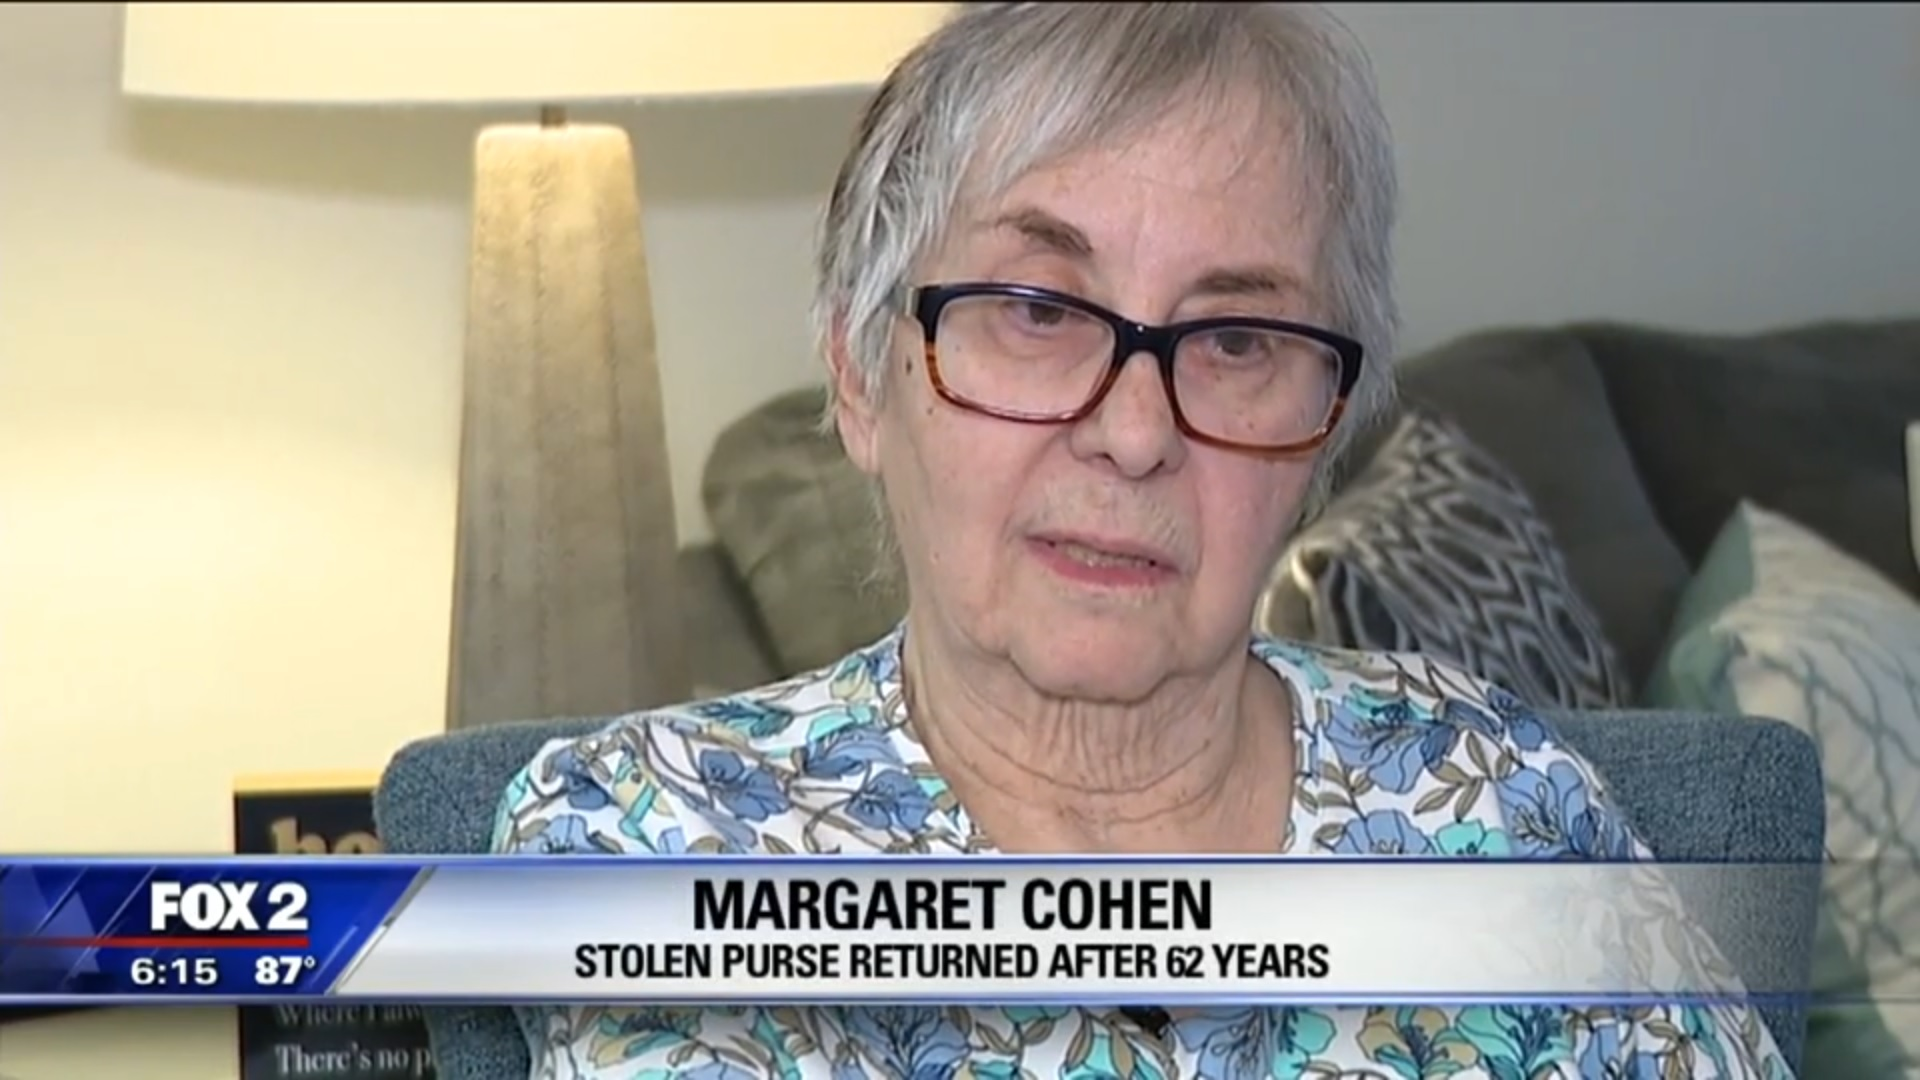 Margaret Cohen: Stolen Purse Returned After 62 Years